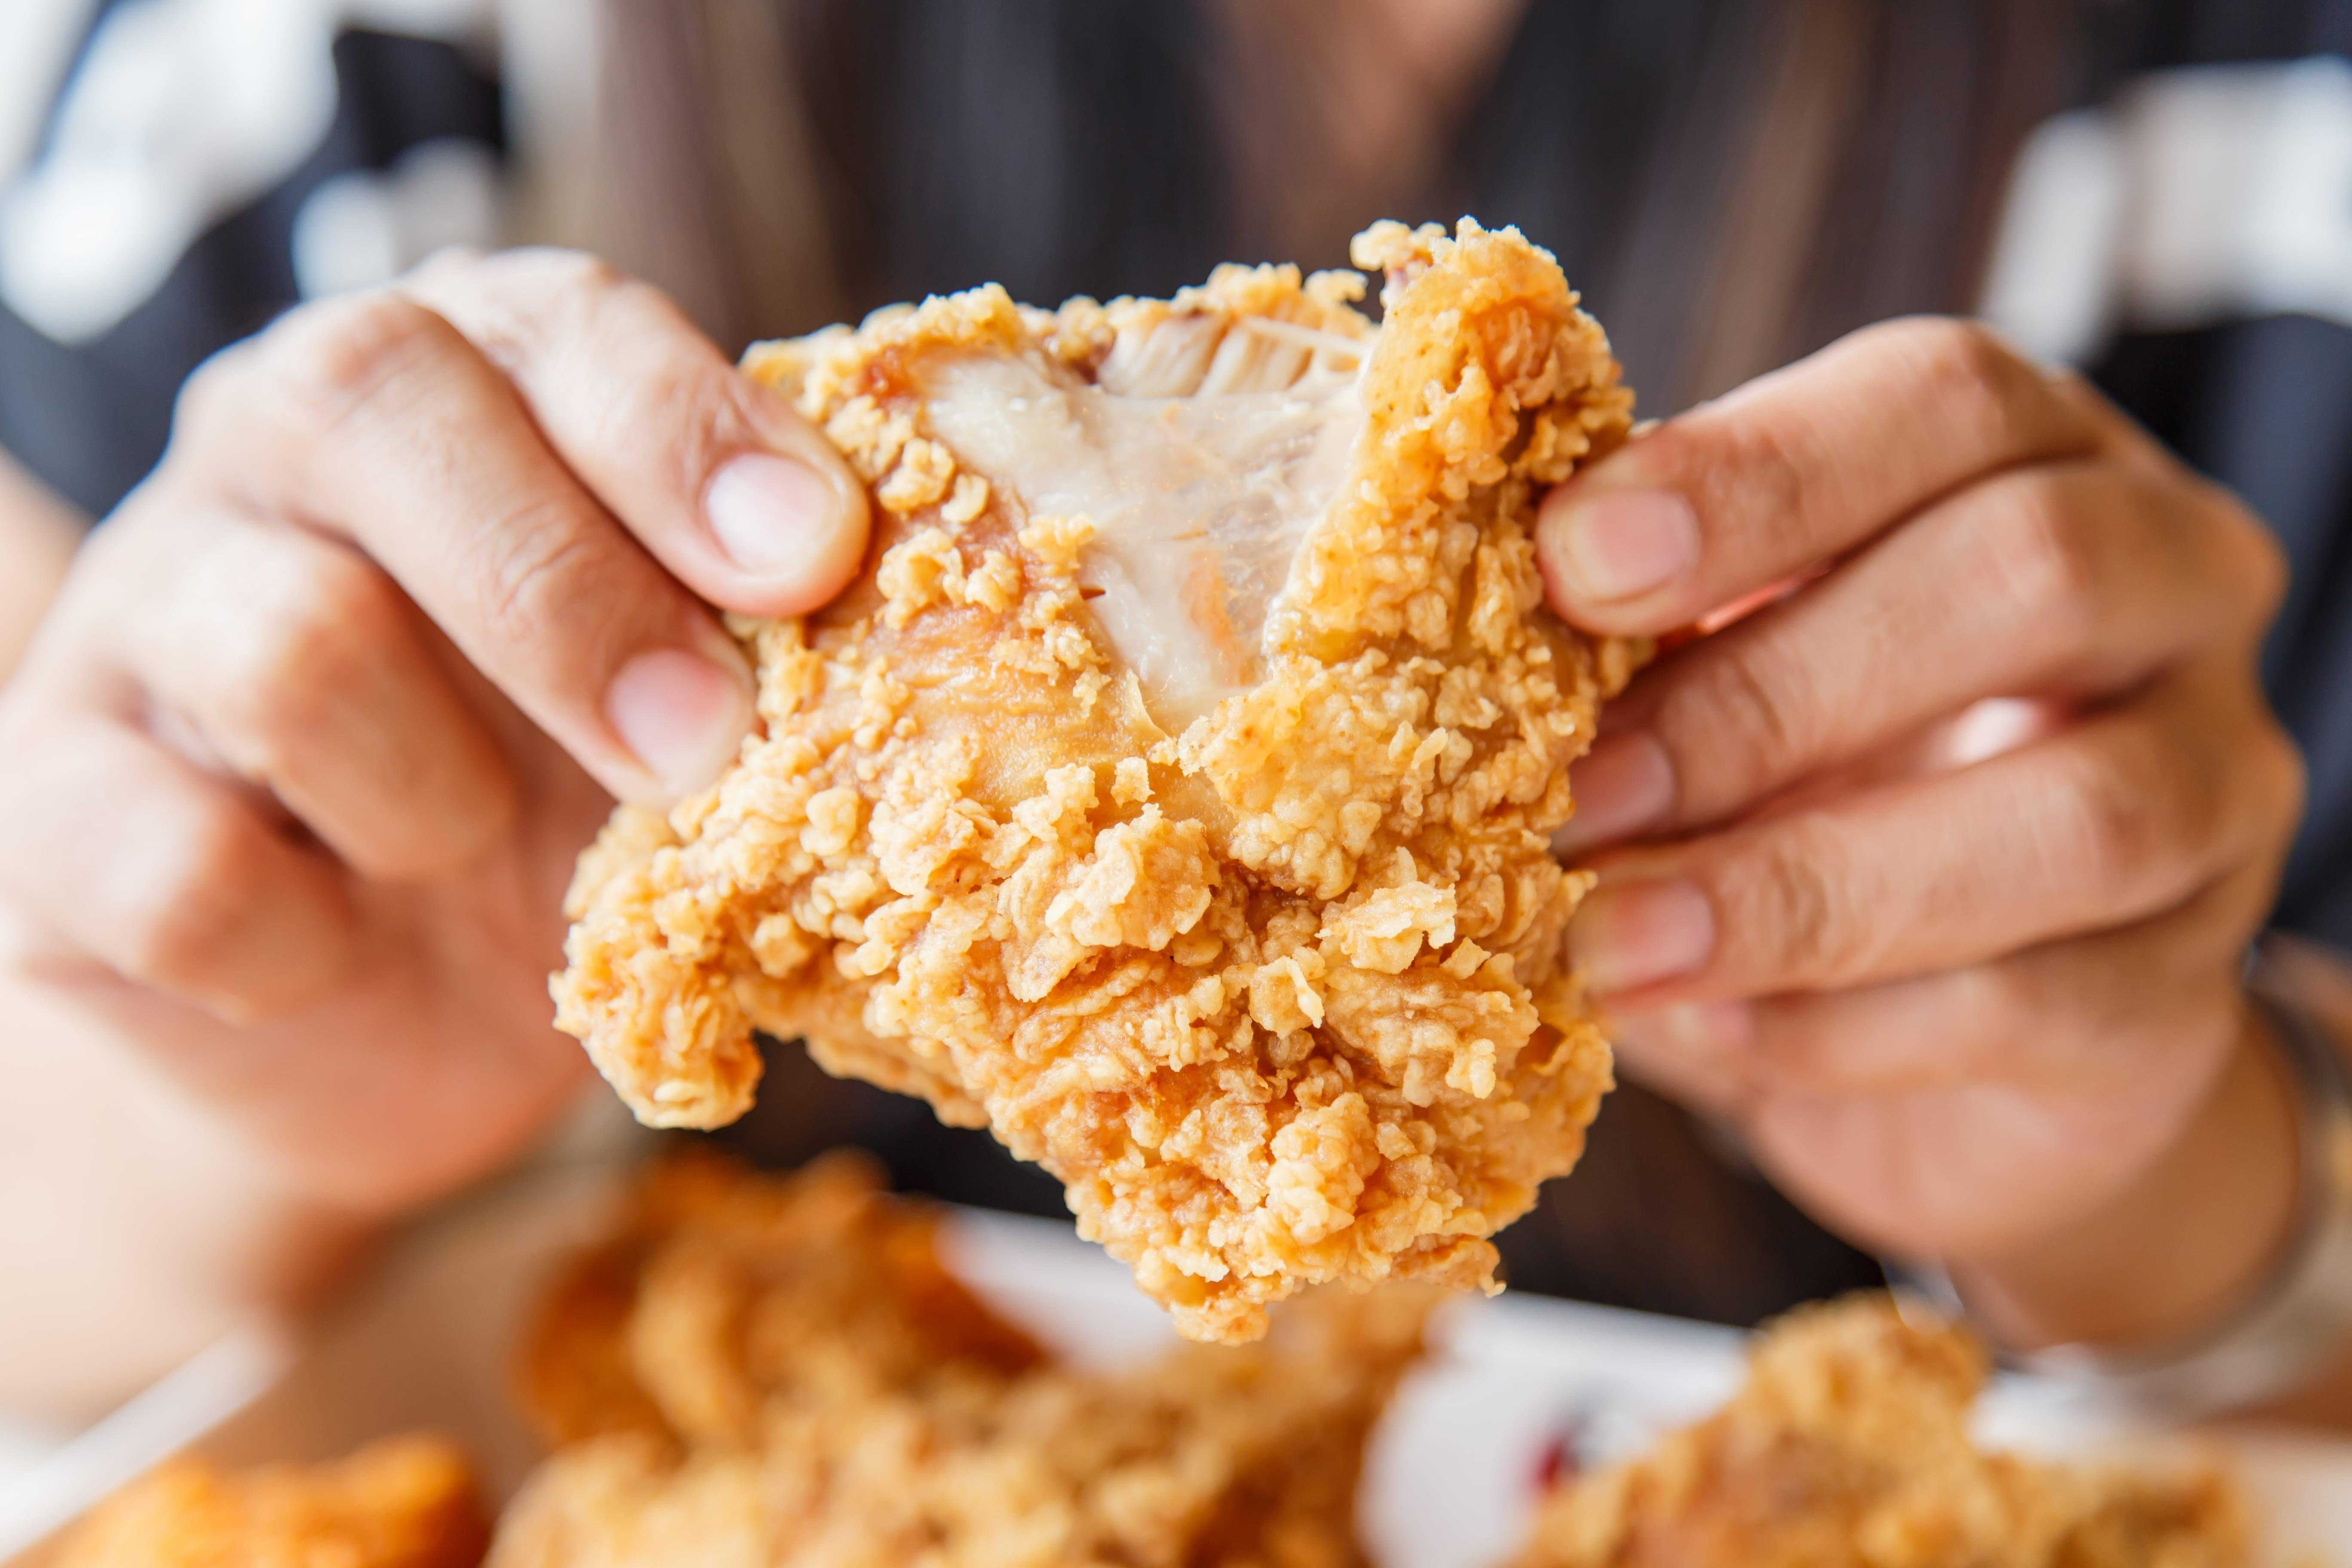 <p>To celebrate National Fried Chicken Day, we're here to help you find the crispiest, juiciest, most delectable piece of poultry in fast food. Americans are passionate about fried chicken and loyal to their favorites, but there's no denying that some chains do it better than others. Let's get down to the details, so that you're ending the day with a mouthful that is finger-licking good.</p>